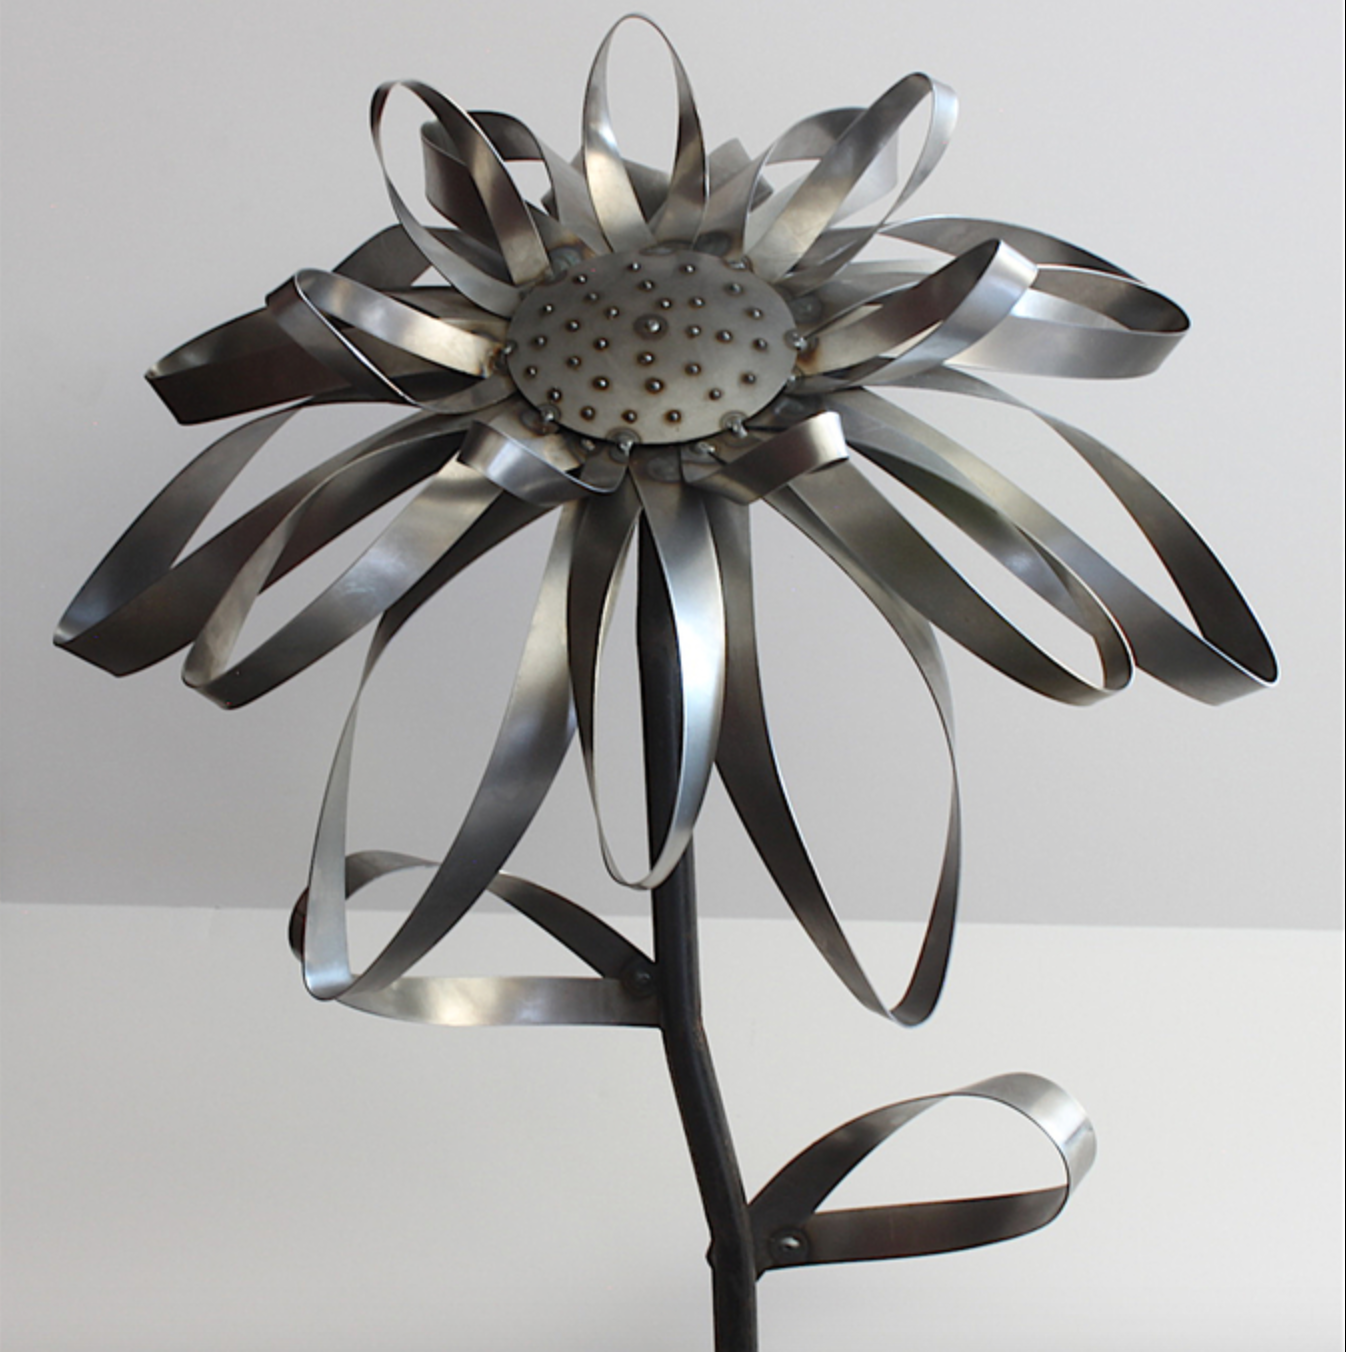 Rick Peerce - I hand make each flower out of 18 gauge steel.Each piece is cut, rolled and bent by hand.I then weld the pieces together to create the different flowers.